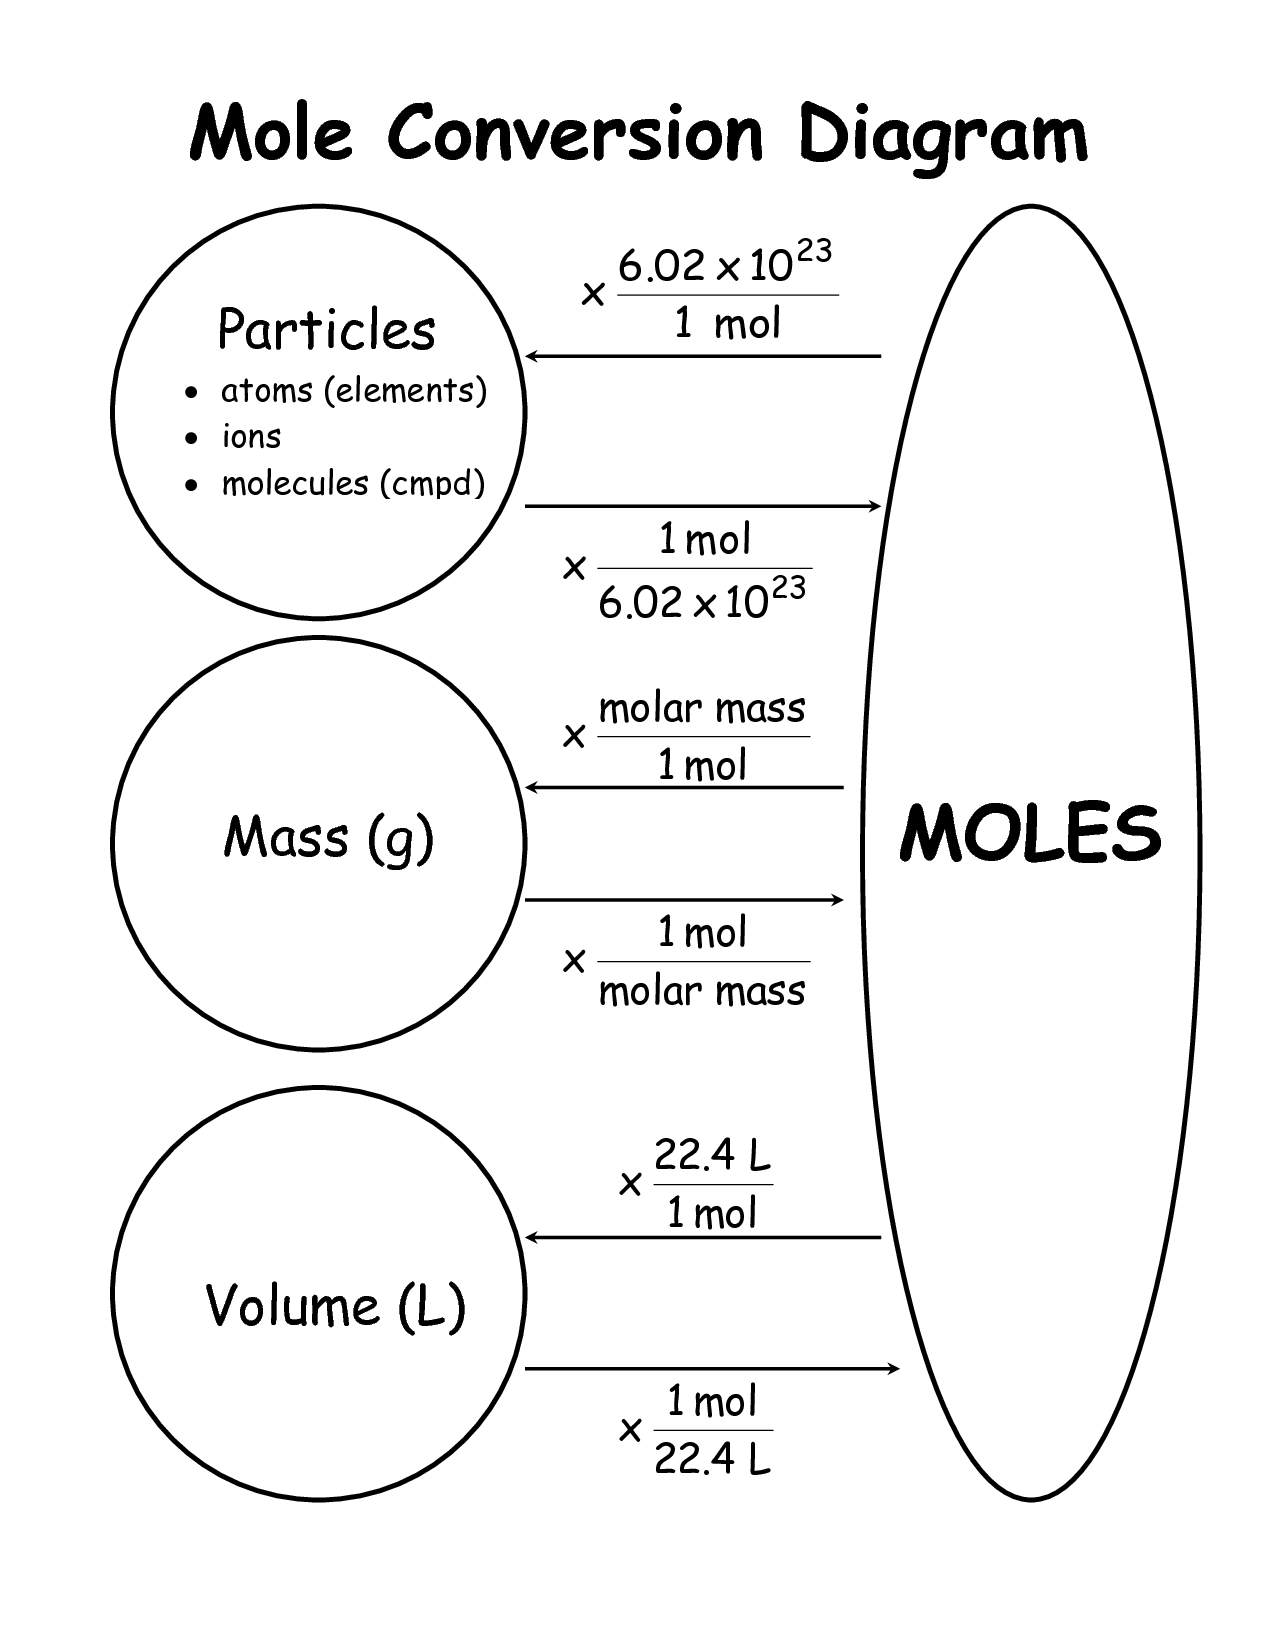 Mole Conversions Worksheet Answers ly Mole Ratio Worksheet additionally Mole Conversions Worksheet   CRHS besides Quiz   Worksheet Converting Grams To Moles   Study   Mole furthermore Selected Answers to Mole Conversions Worksheet   ppt download likewise  additionally Mole ratio worksheet as well as mole conversion worksheet answer key furthermore Graphic organizer for mole conversion problems   graphic organizer also Mole Conversions Worksheet   Pre AP chemistry summer ignment further ogies further Moles Conversion Worksheet   Checks Worksheet also mole conversion problems with answers   mole conversion problem set also Mole Conversion Worksheet Answers   Q O U N furthermore Mole Conversions and Calculations Coloring Worksheet for Review or together with  additionally Mole M Problems Worksheet Answers   sarahlemoncelli besides Metric Conversion Worksheet Pdf   Briefencounters Worksheet Template. on mole conversion worksheet with answers